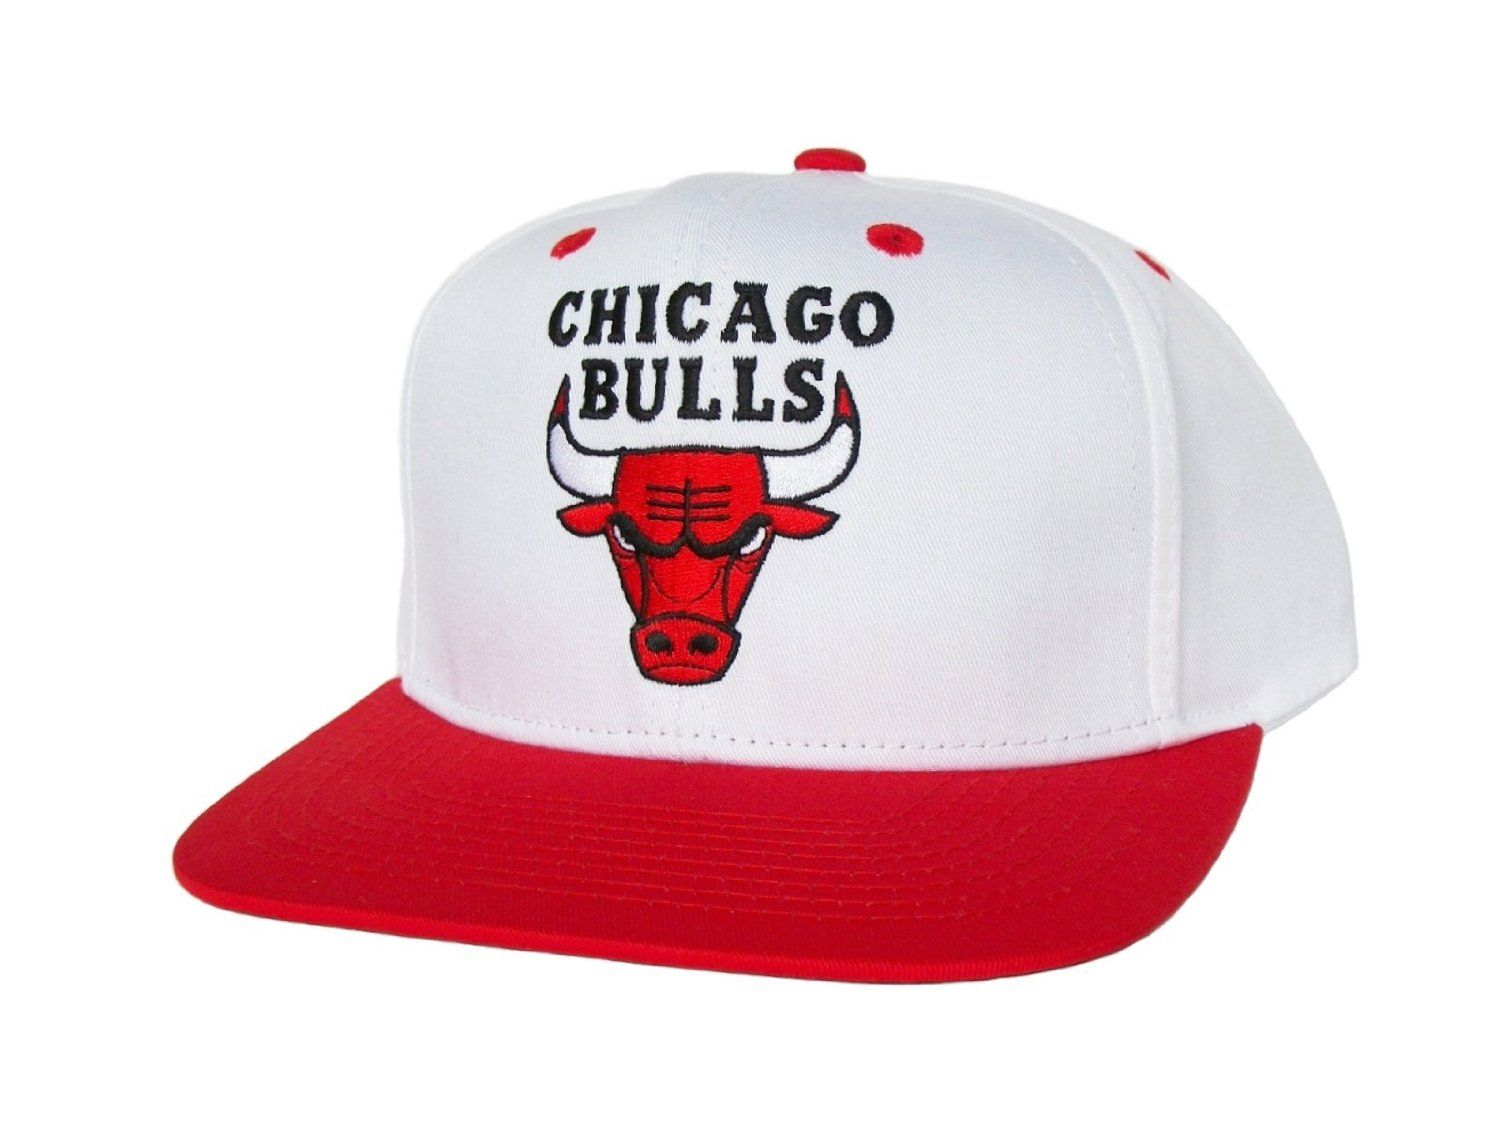 new arrive 68ed3 57469 CHICAGO BULLS Retro Old School Snapback Hat - NBA Cap - 2 Tone White Red